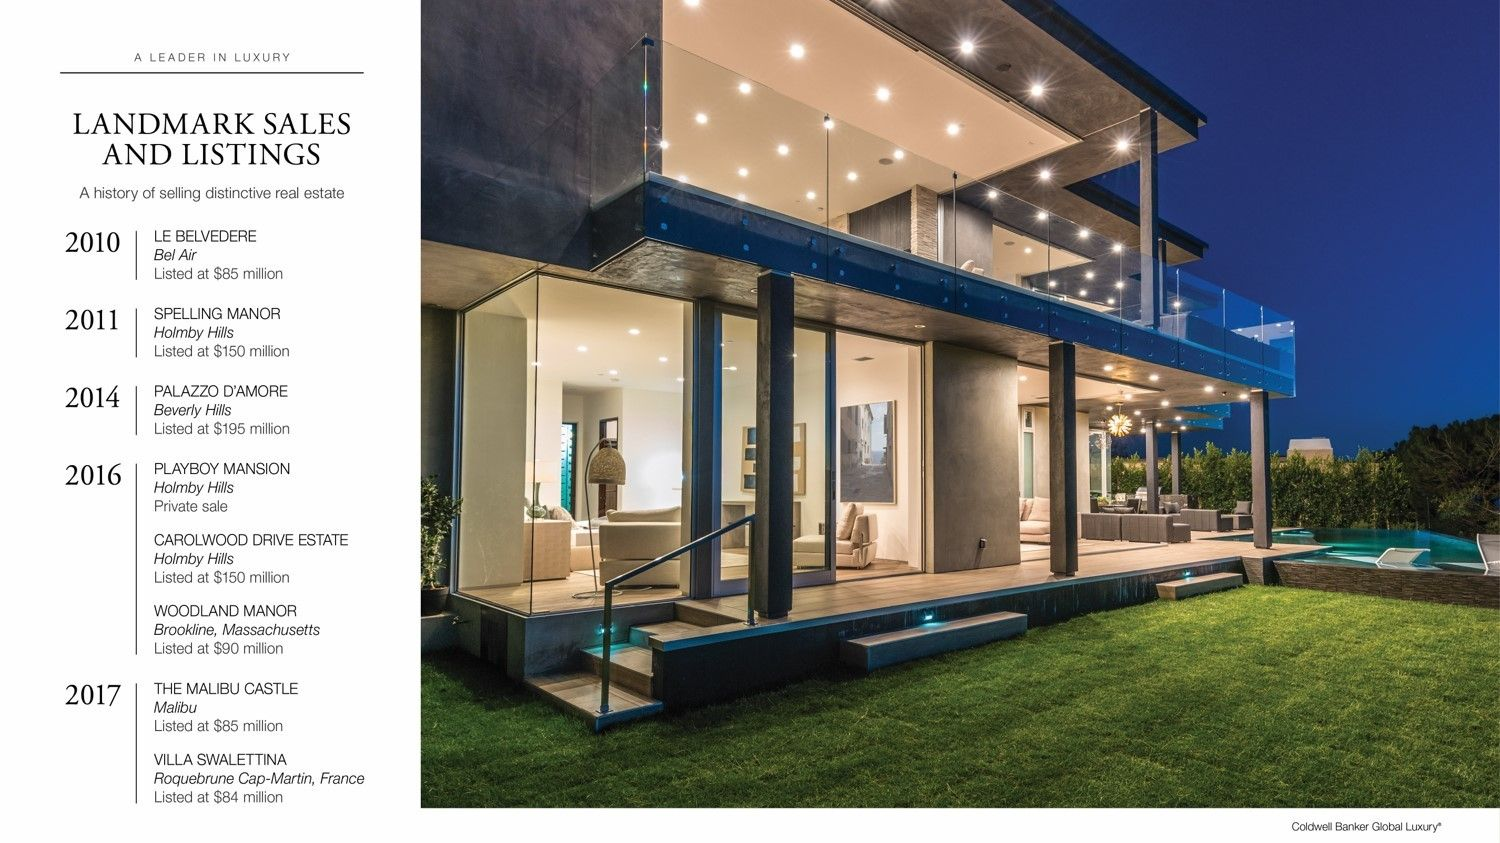 coldwell-banker-global-luxury-landmark-sales